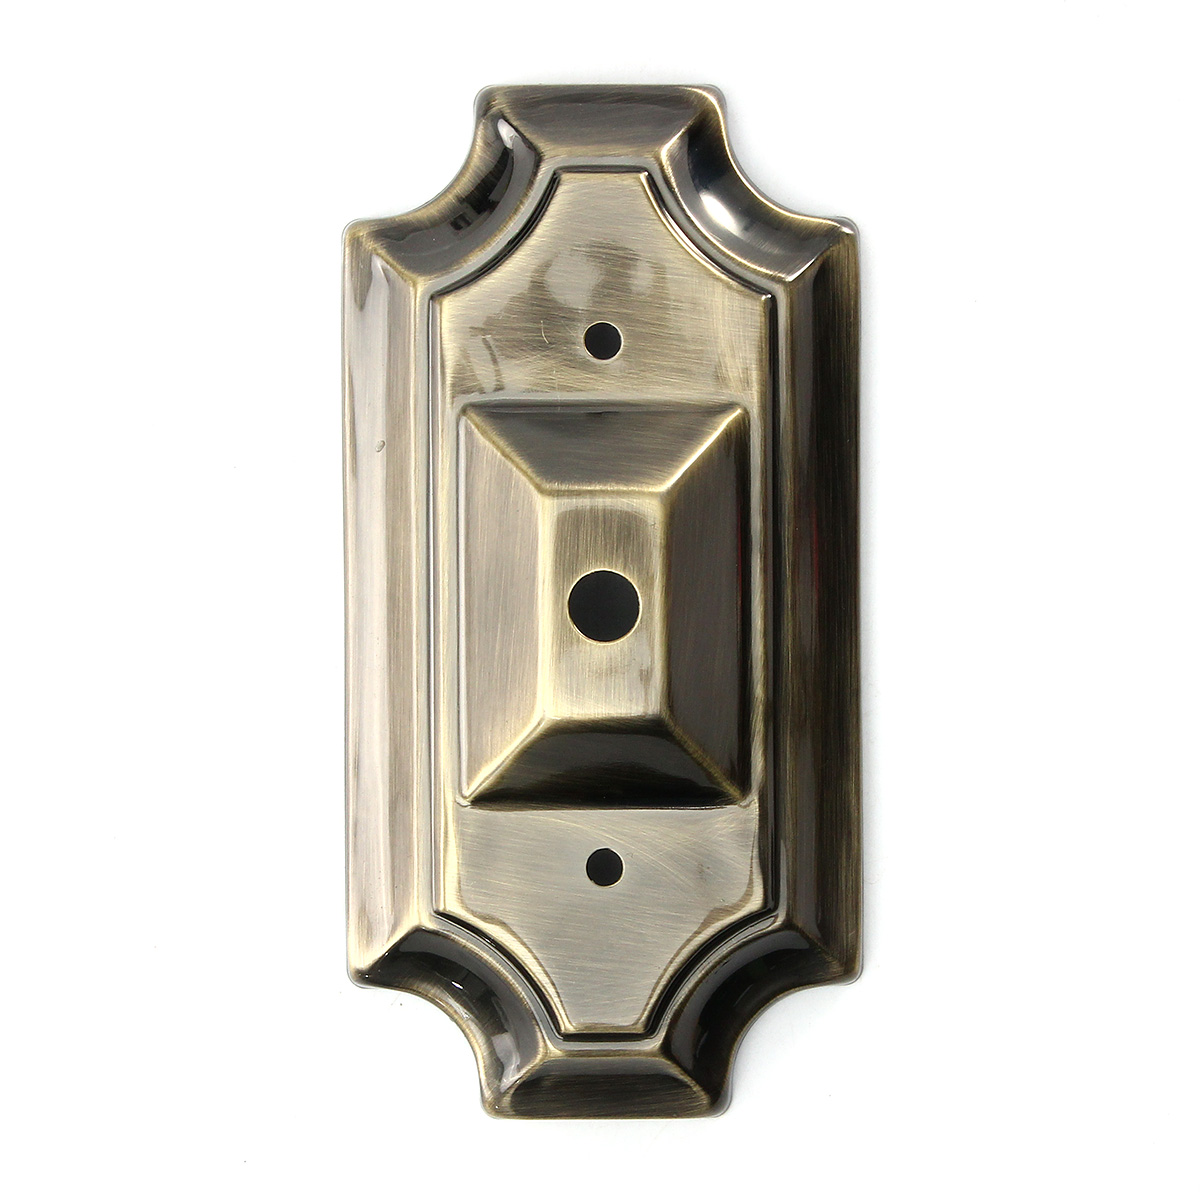 Retro Vintage Rectangle Style Sconce Wall Lamp Light Base Part Replacement Mount Fixture